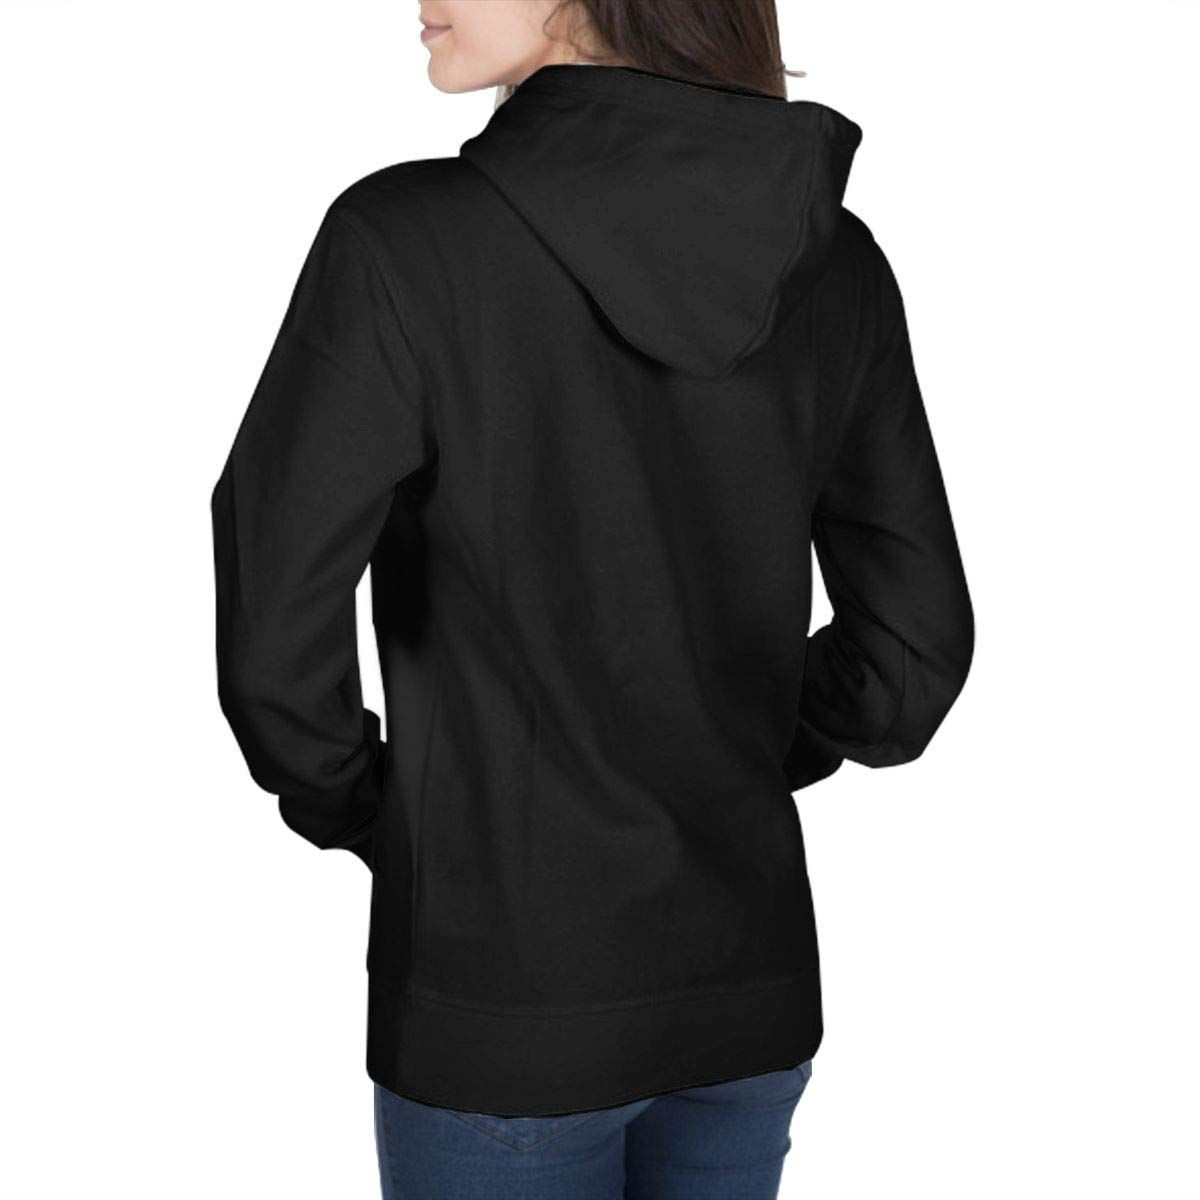 Lutratocro Womens Patchwork Loose Lace Long Sleeve Drawstring Hooded Sweatshirts